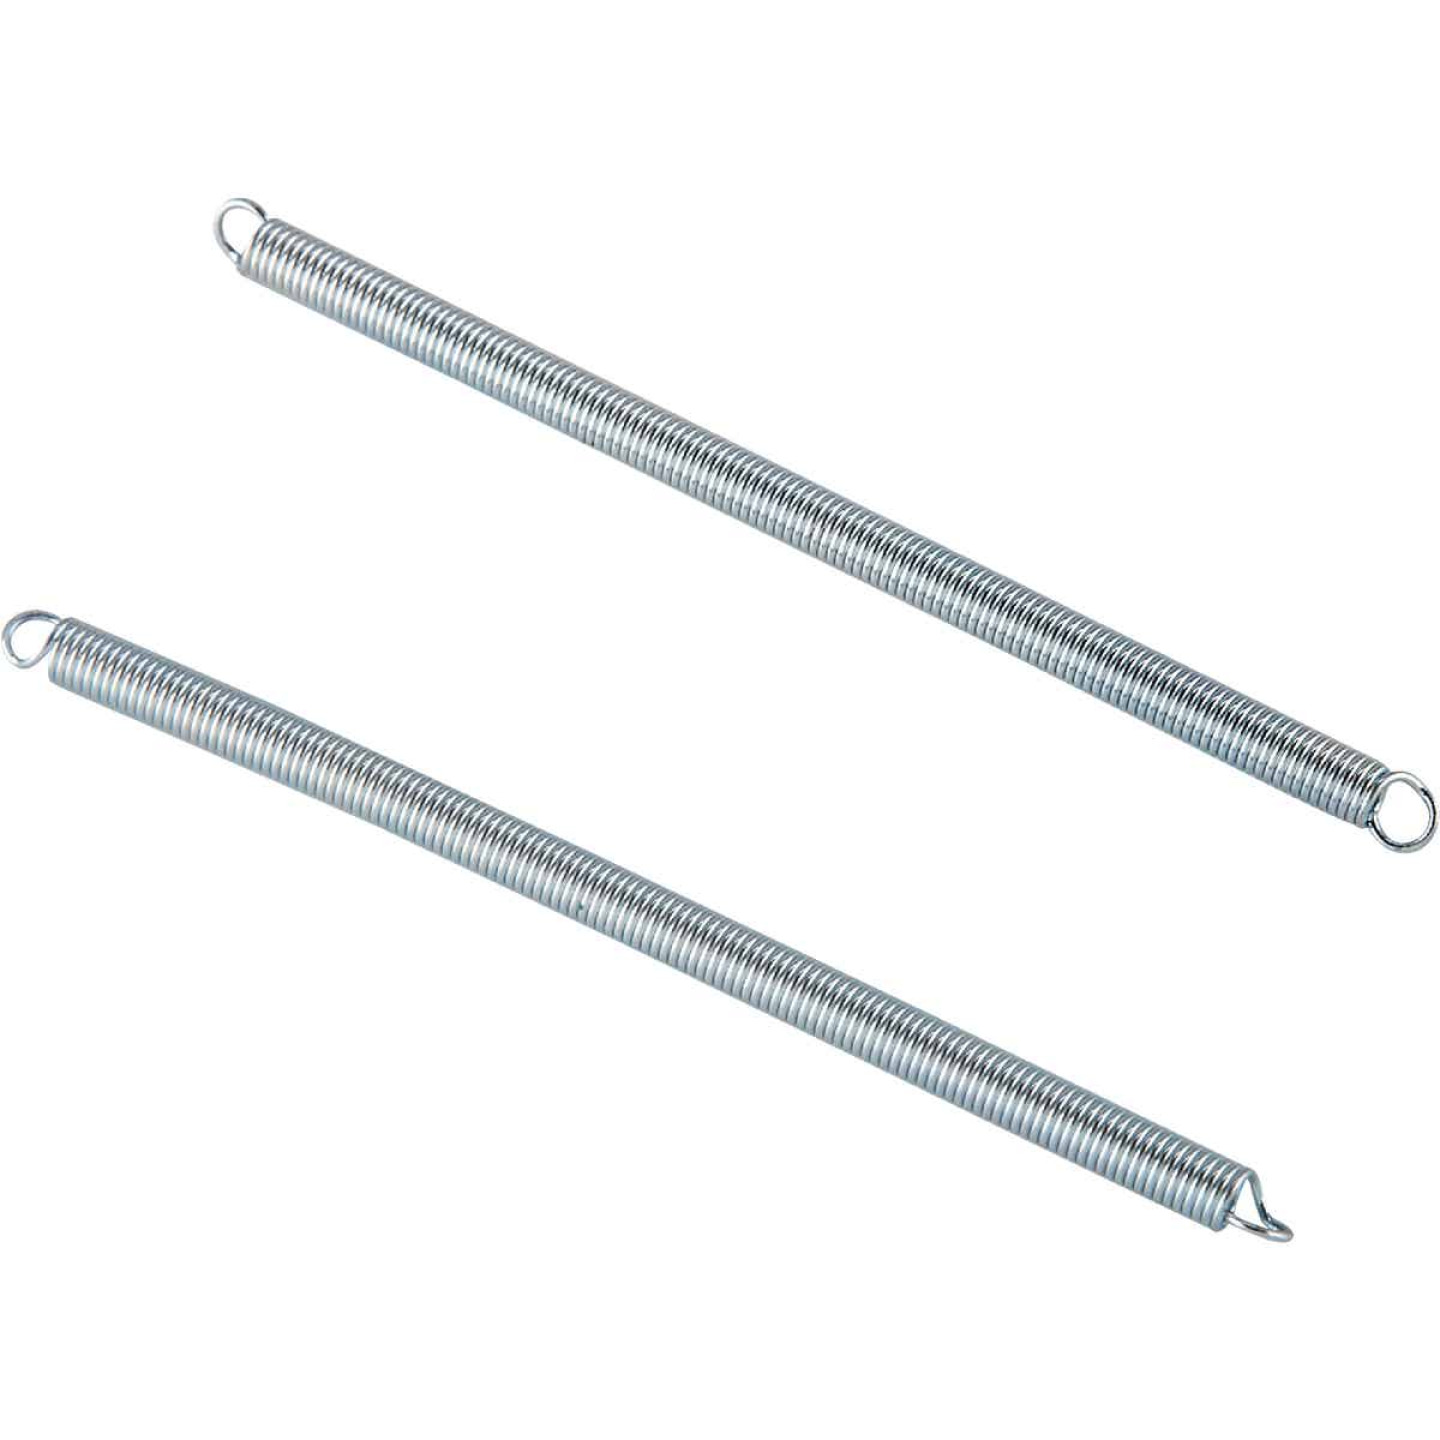 Century Spring 8-1/2 In. x 7/16 In. Extension Spring (1 Count) Image 1